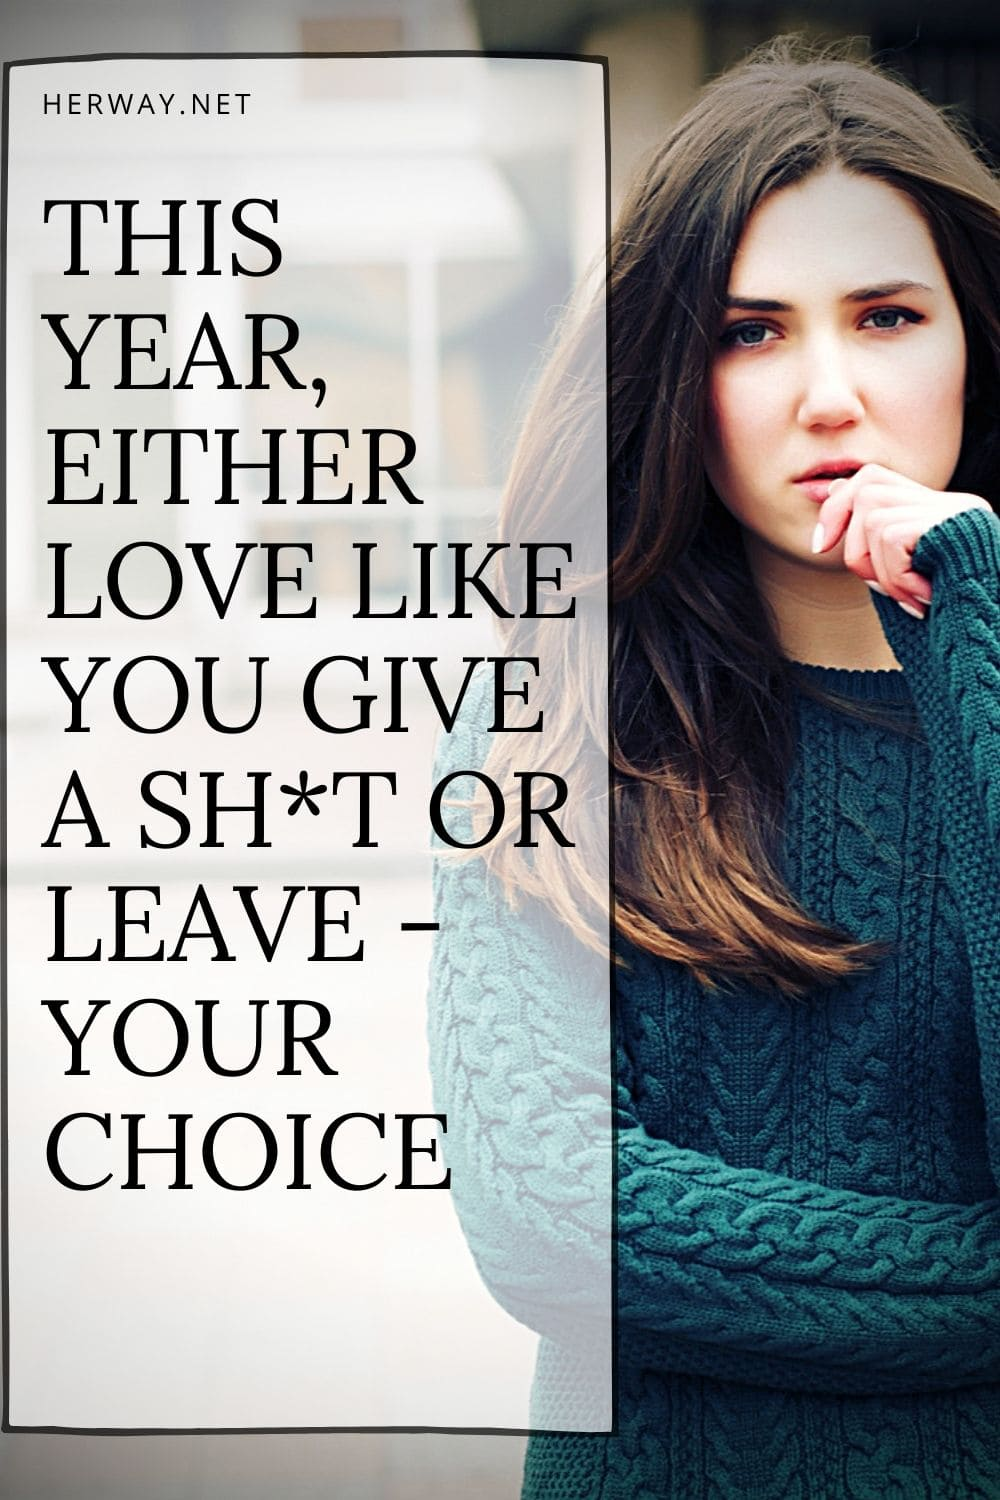 This Year, Either Love Like You Give A Sh*t Or Leave - Your Choice